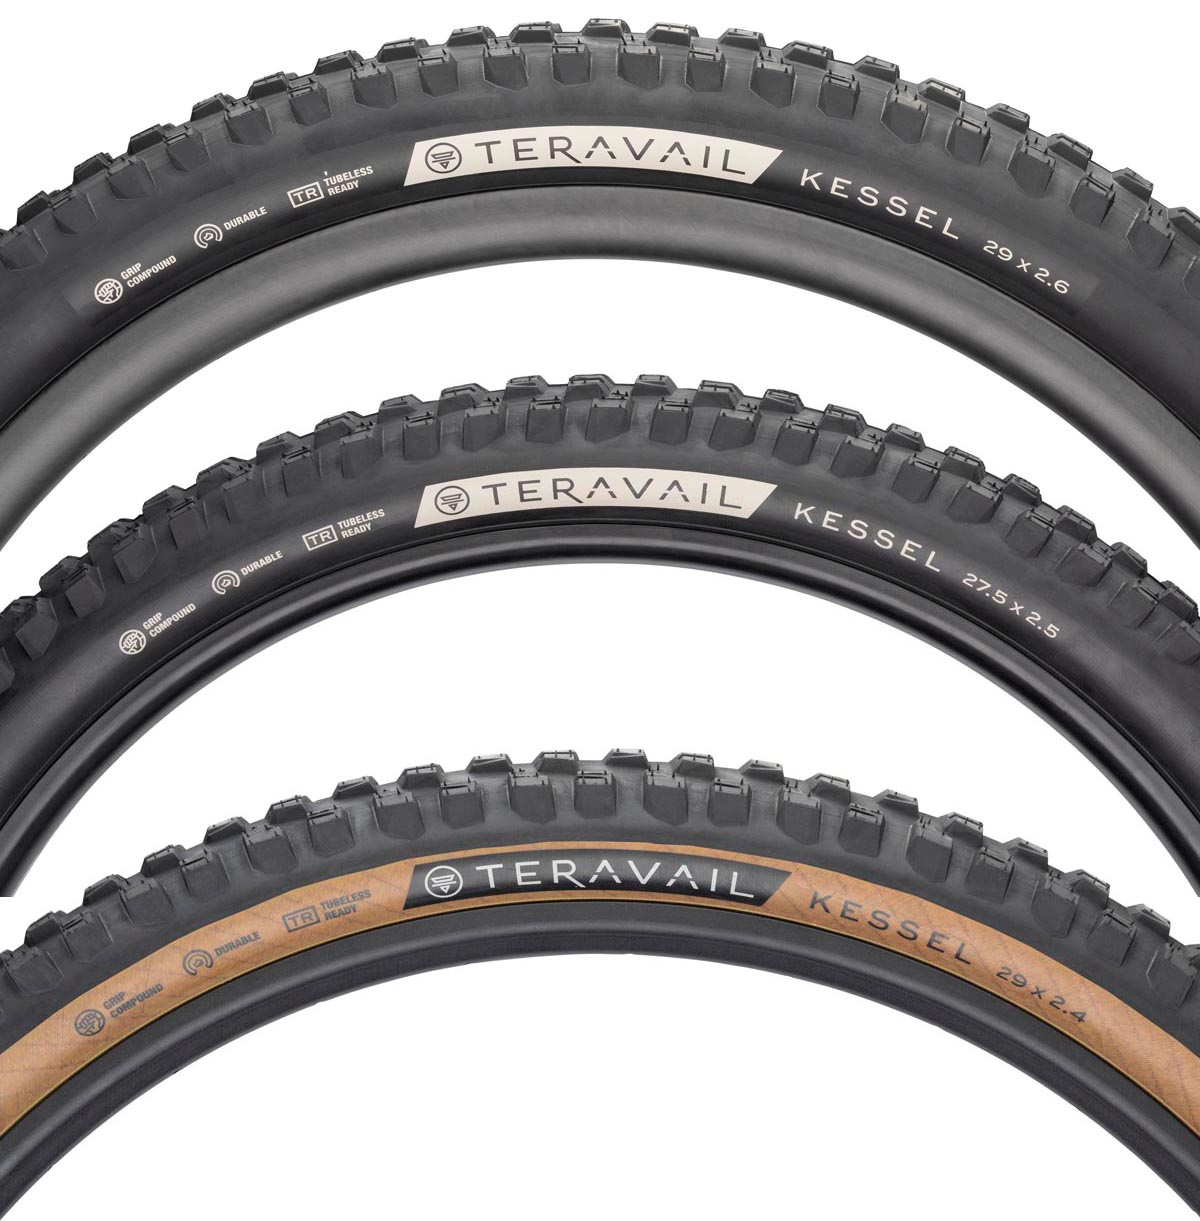 Teravail gets aggressive with new Kessel Mountain Bike Tire